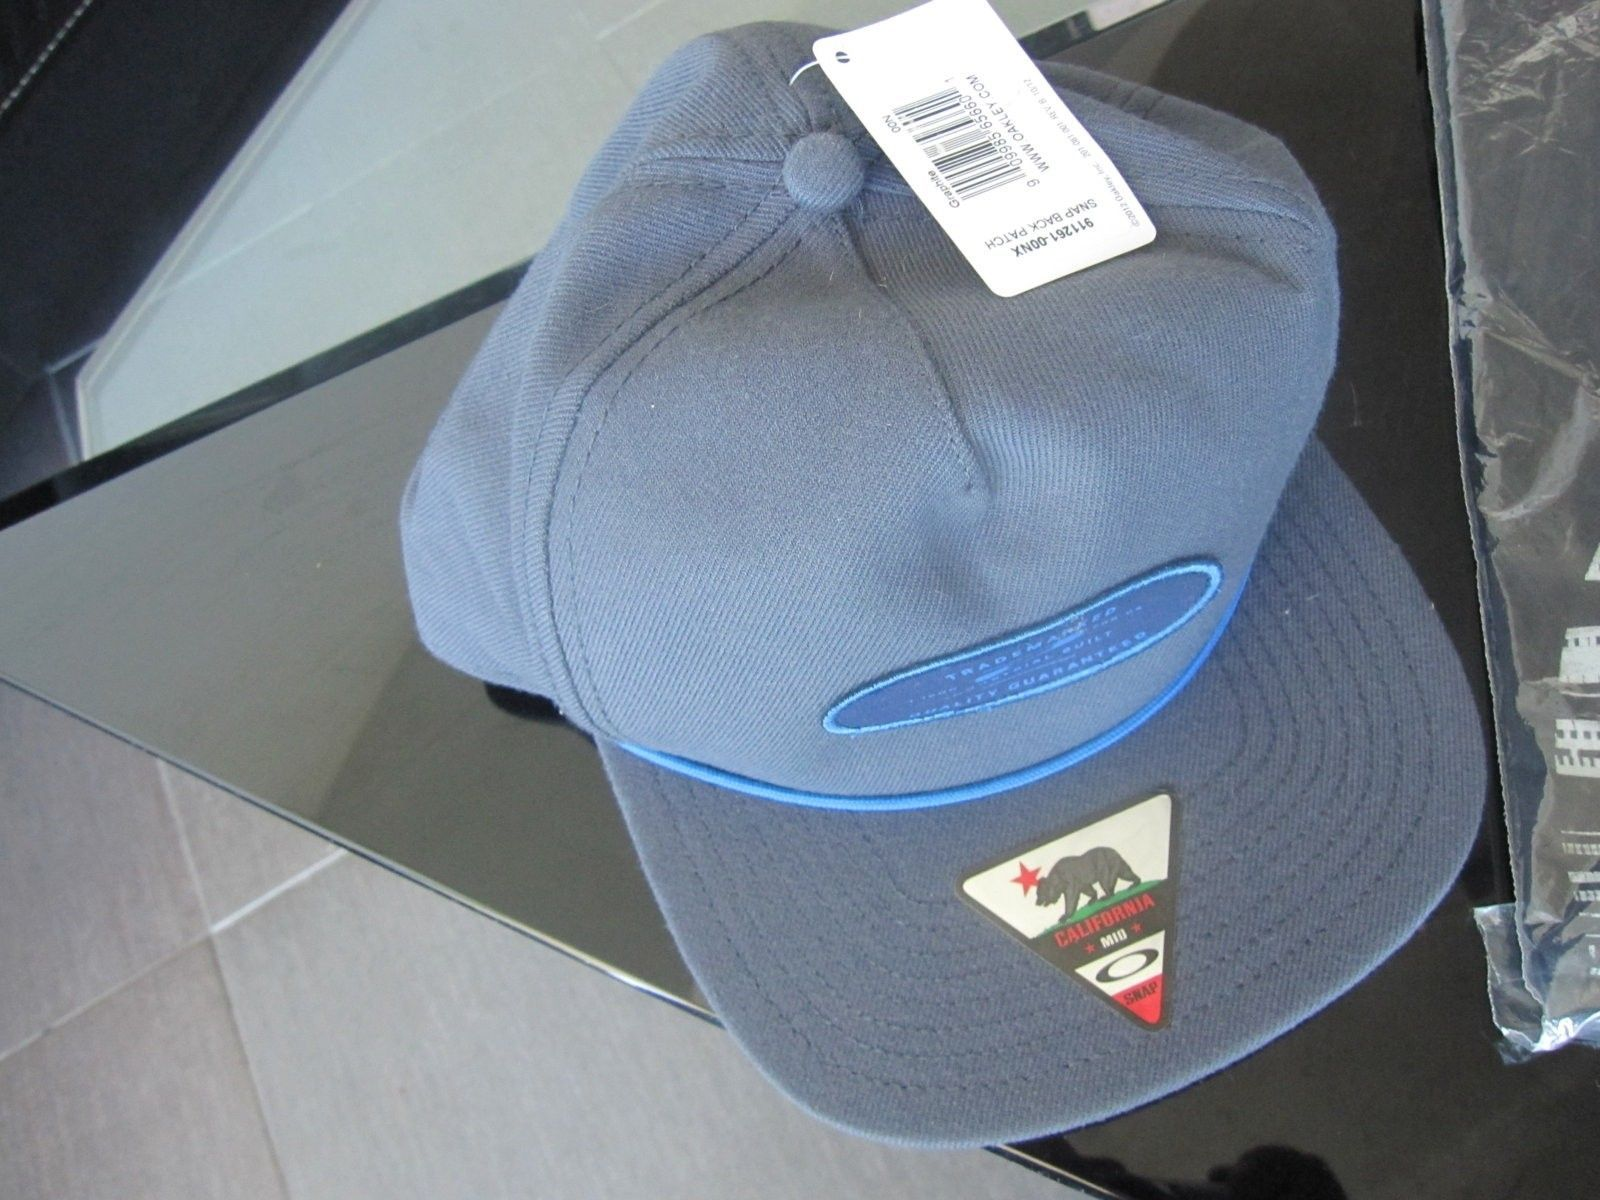 New Oakley clothing items size L - pic 3.JPG